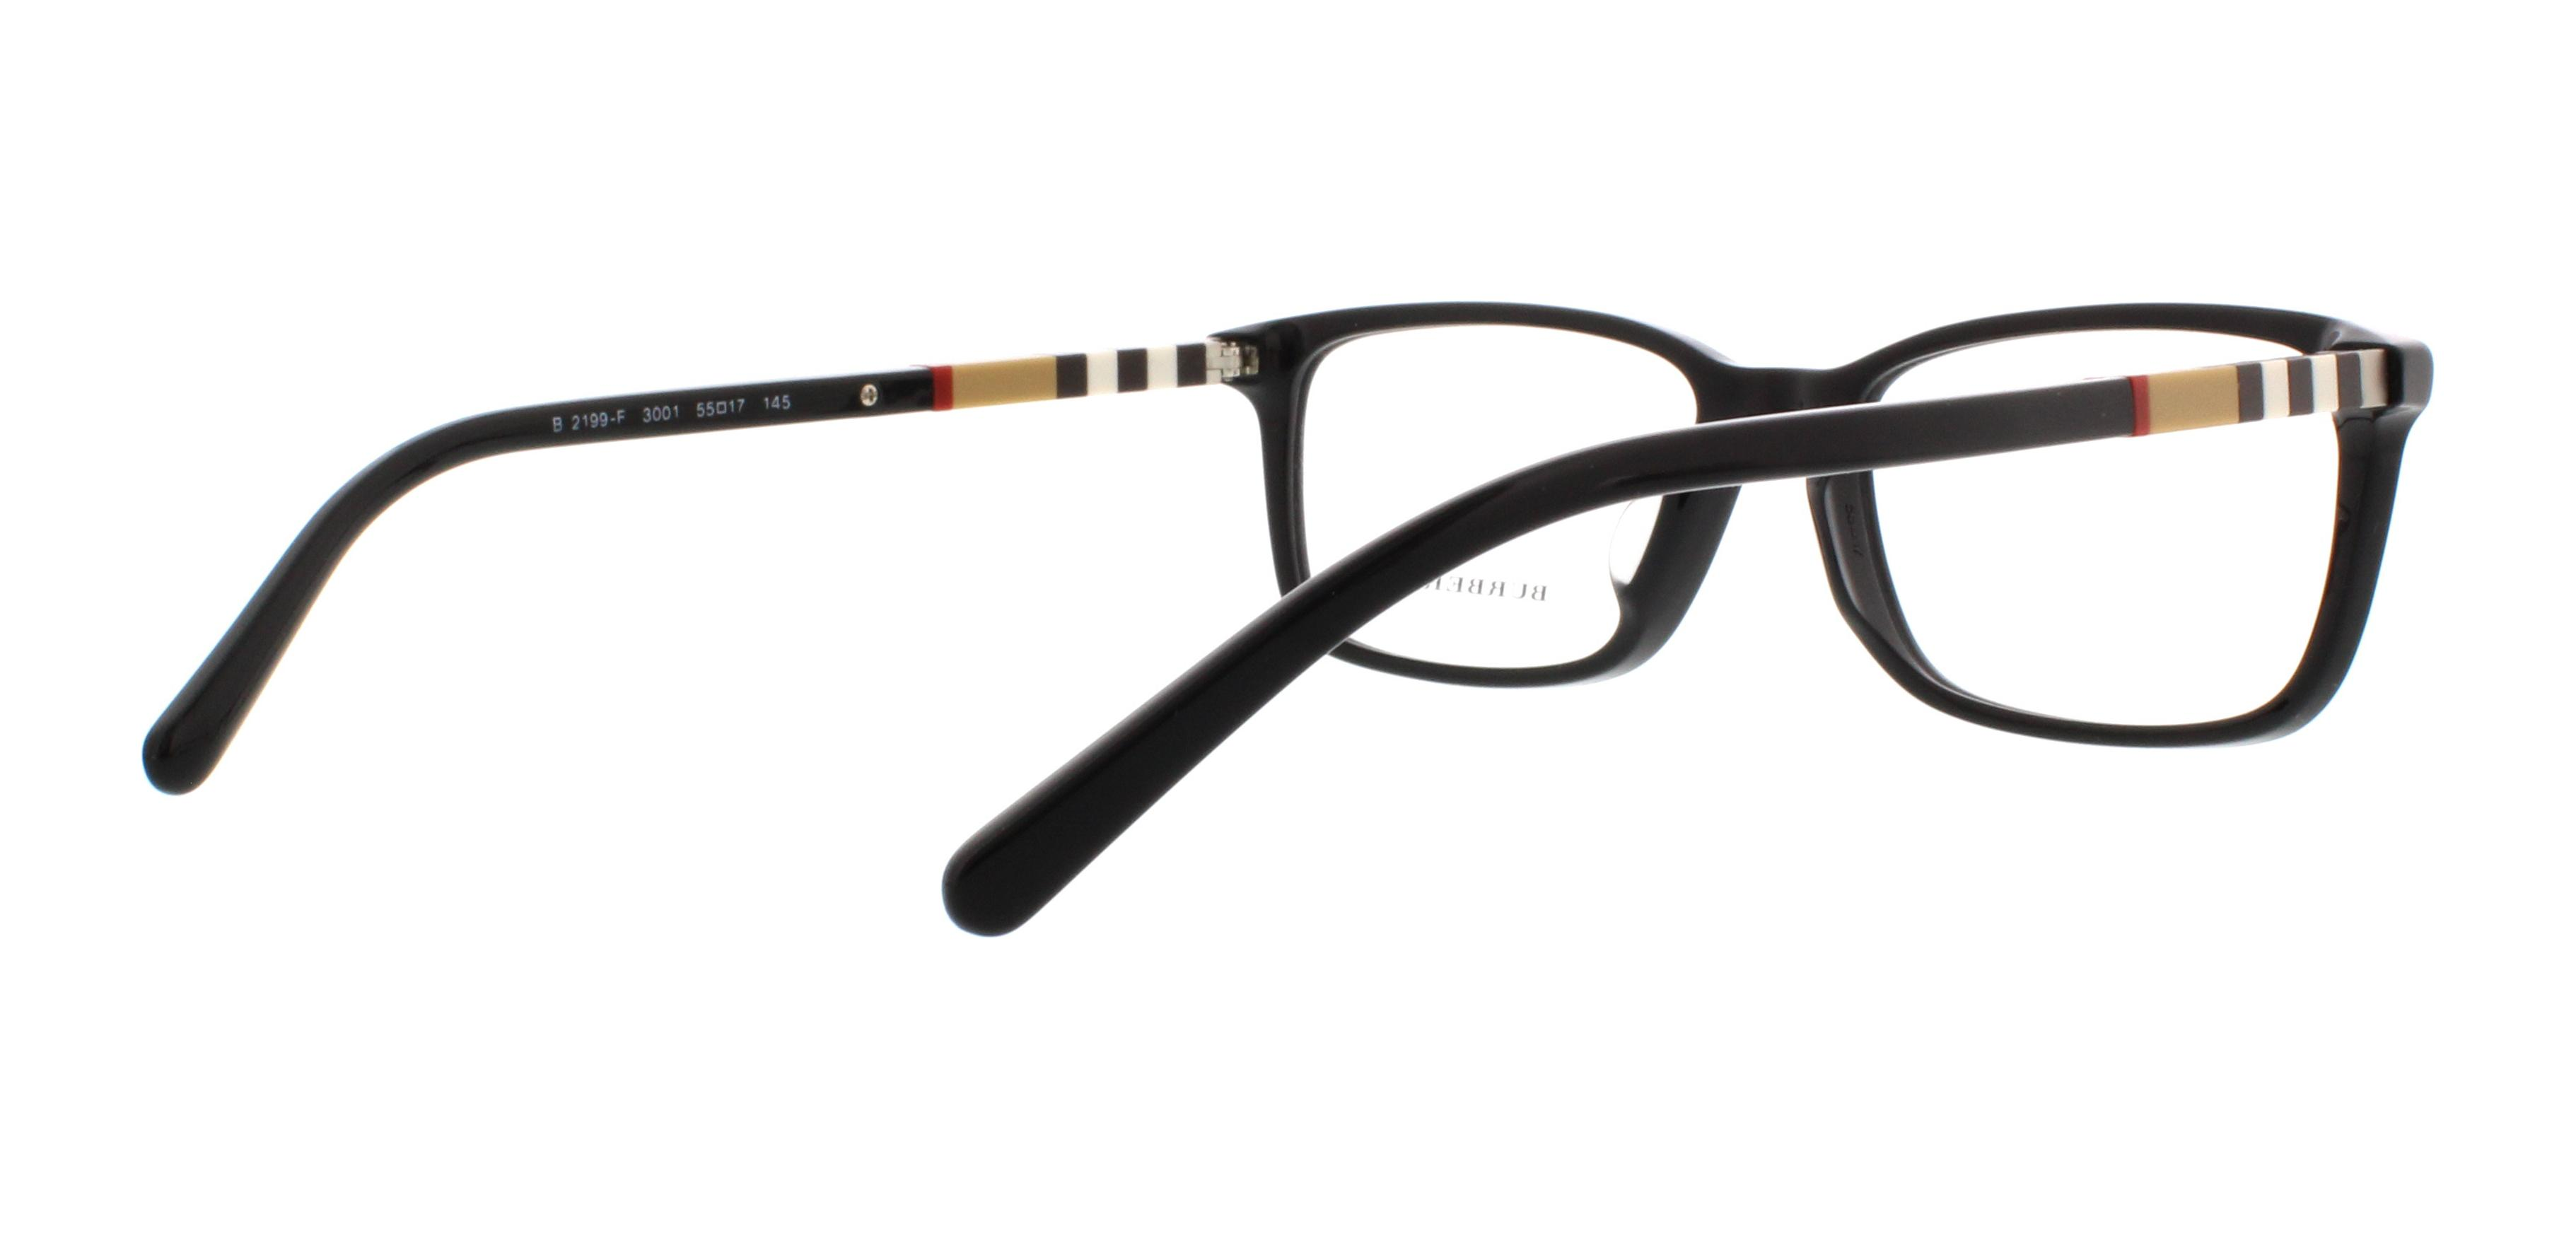 935a9b77dfe BURBERRY Eyeglasses BE 2199F 3001 Black 55MM - Walmart.com